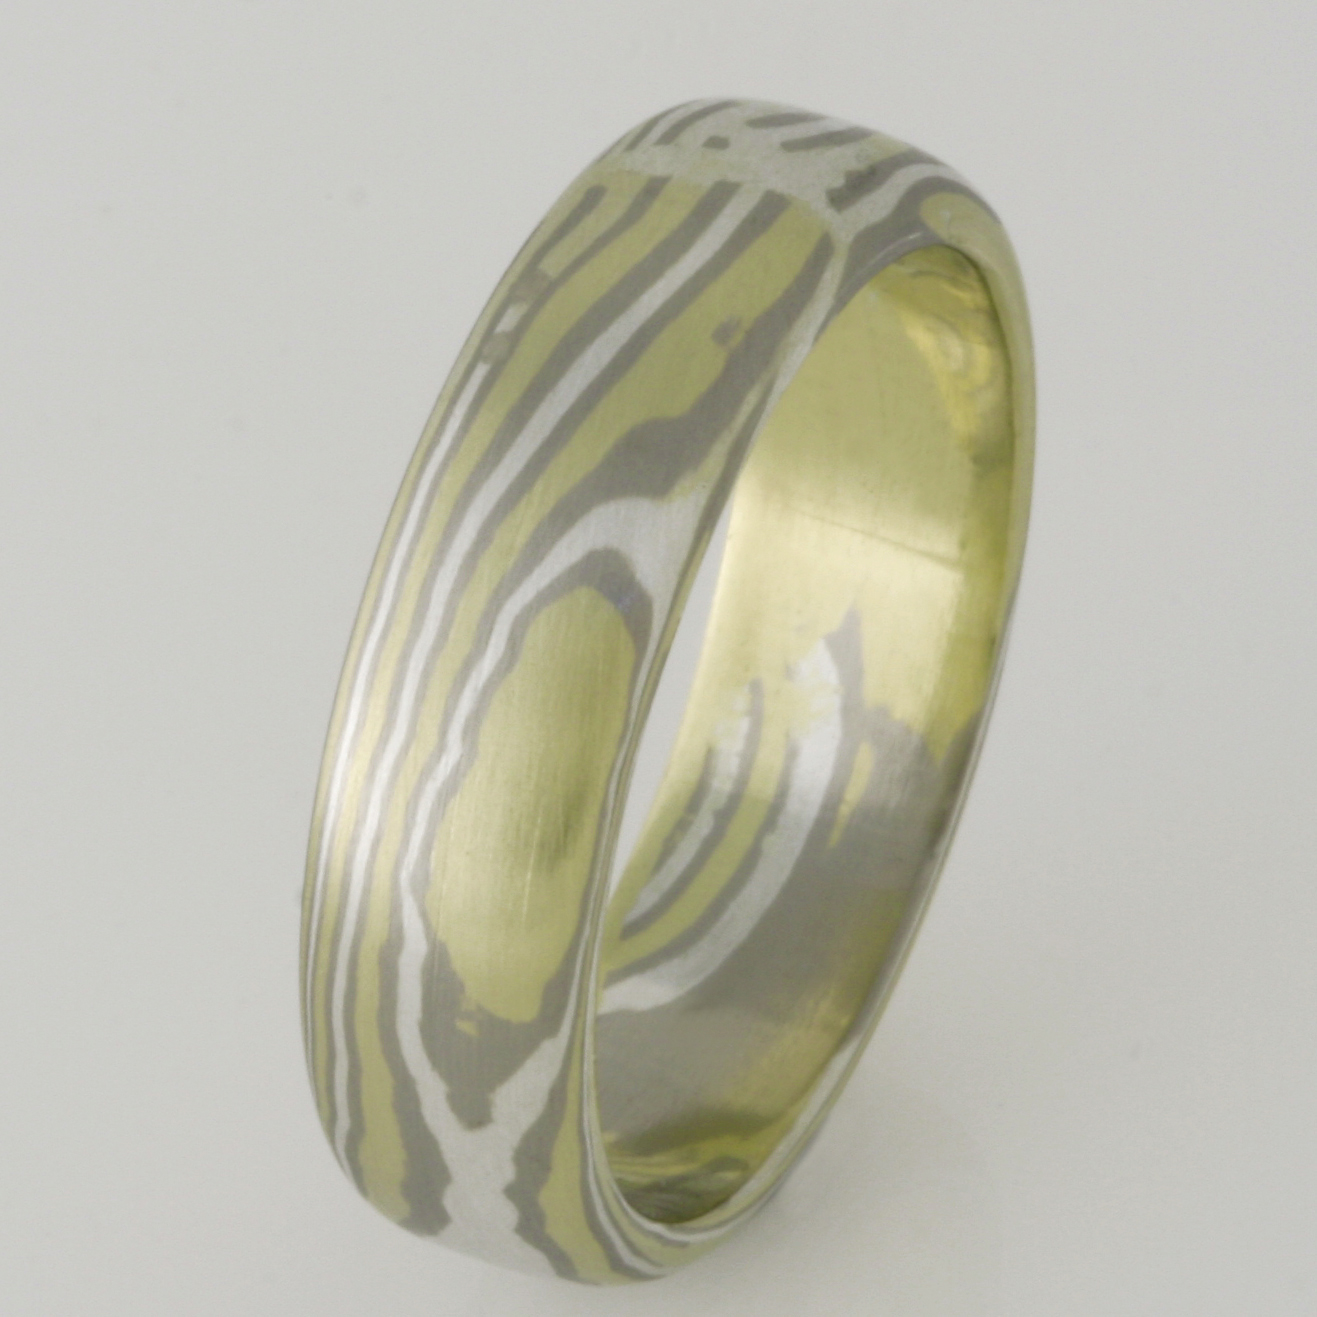 Handmade gents 18ct green, white and sterling silver Mokume Gane wedding ring.